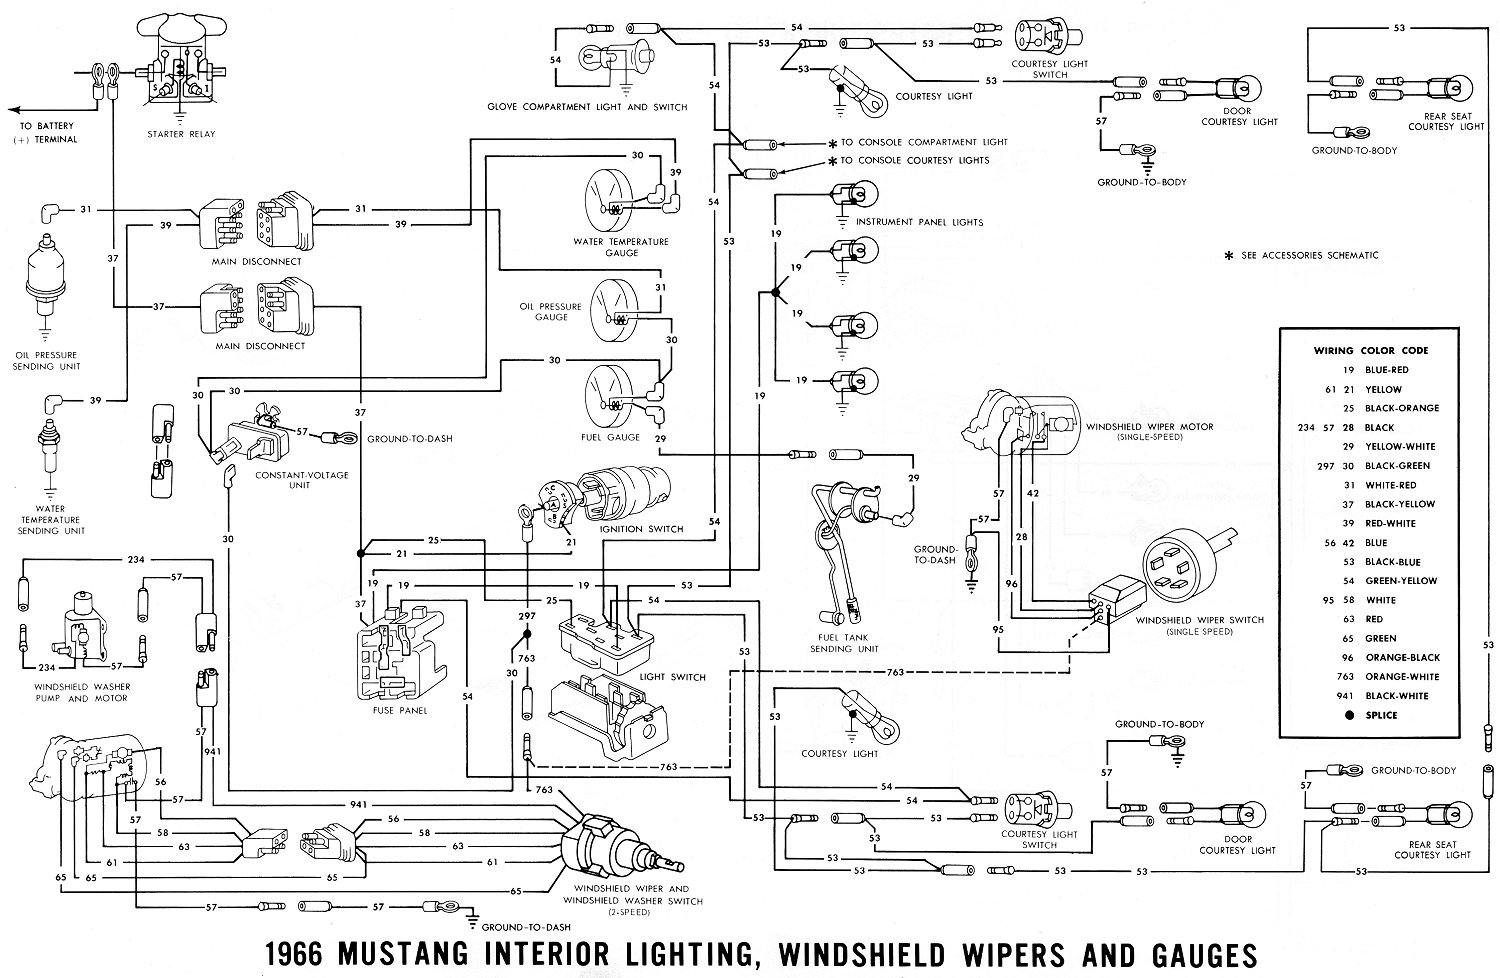 65 mustang 5 gauge cluster wiring diagram example electrical rh olkha co 65 Mustang Gauge Wiring Diagram 65 Mustang Dash Wiring Diagram